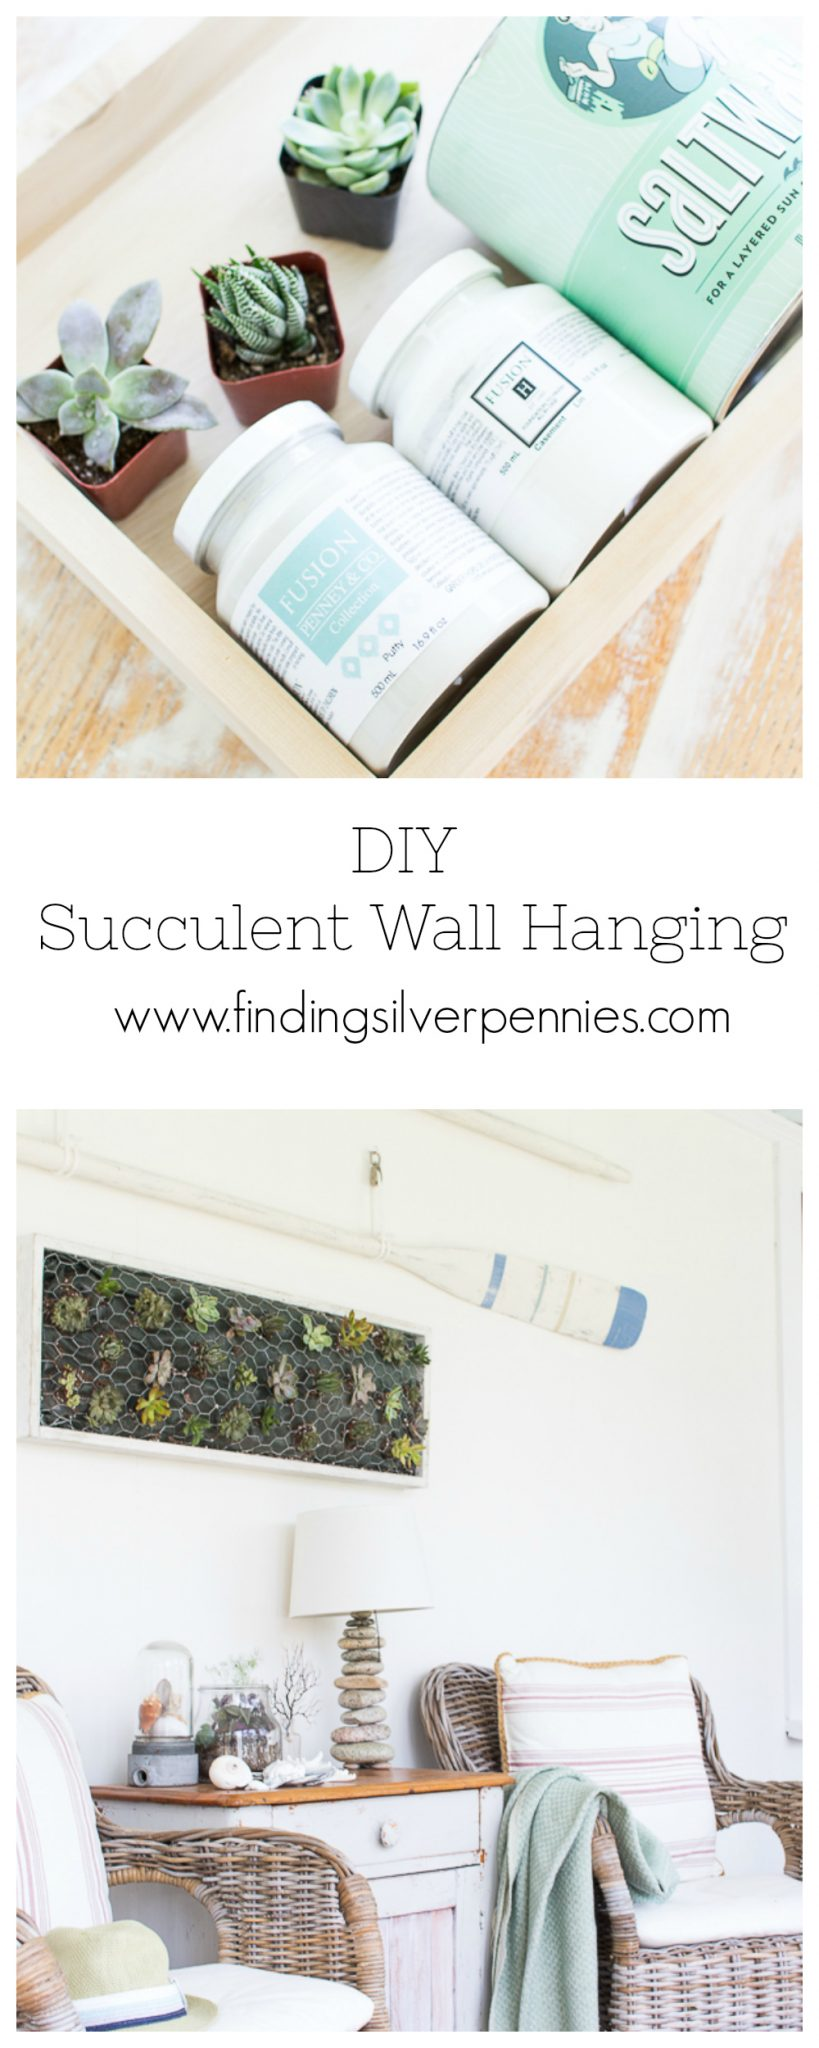 Pretty pastel colors, Saltwash Powder and succulents make for a lovely coastal inspired DIY. Learn to make your own DIY Succulent Wall Hanging!